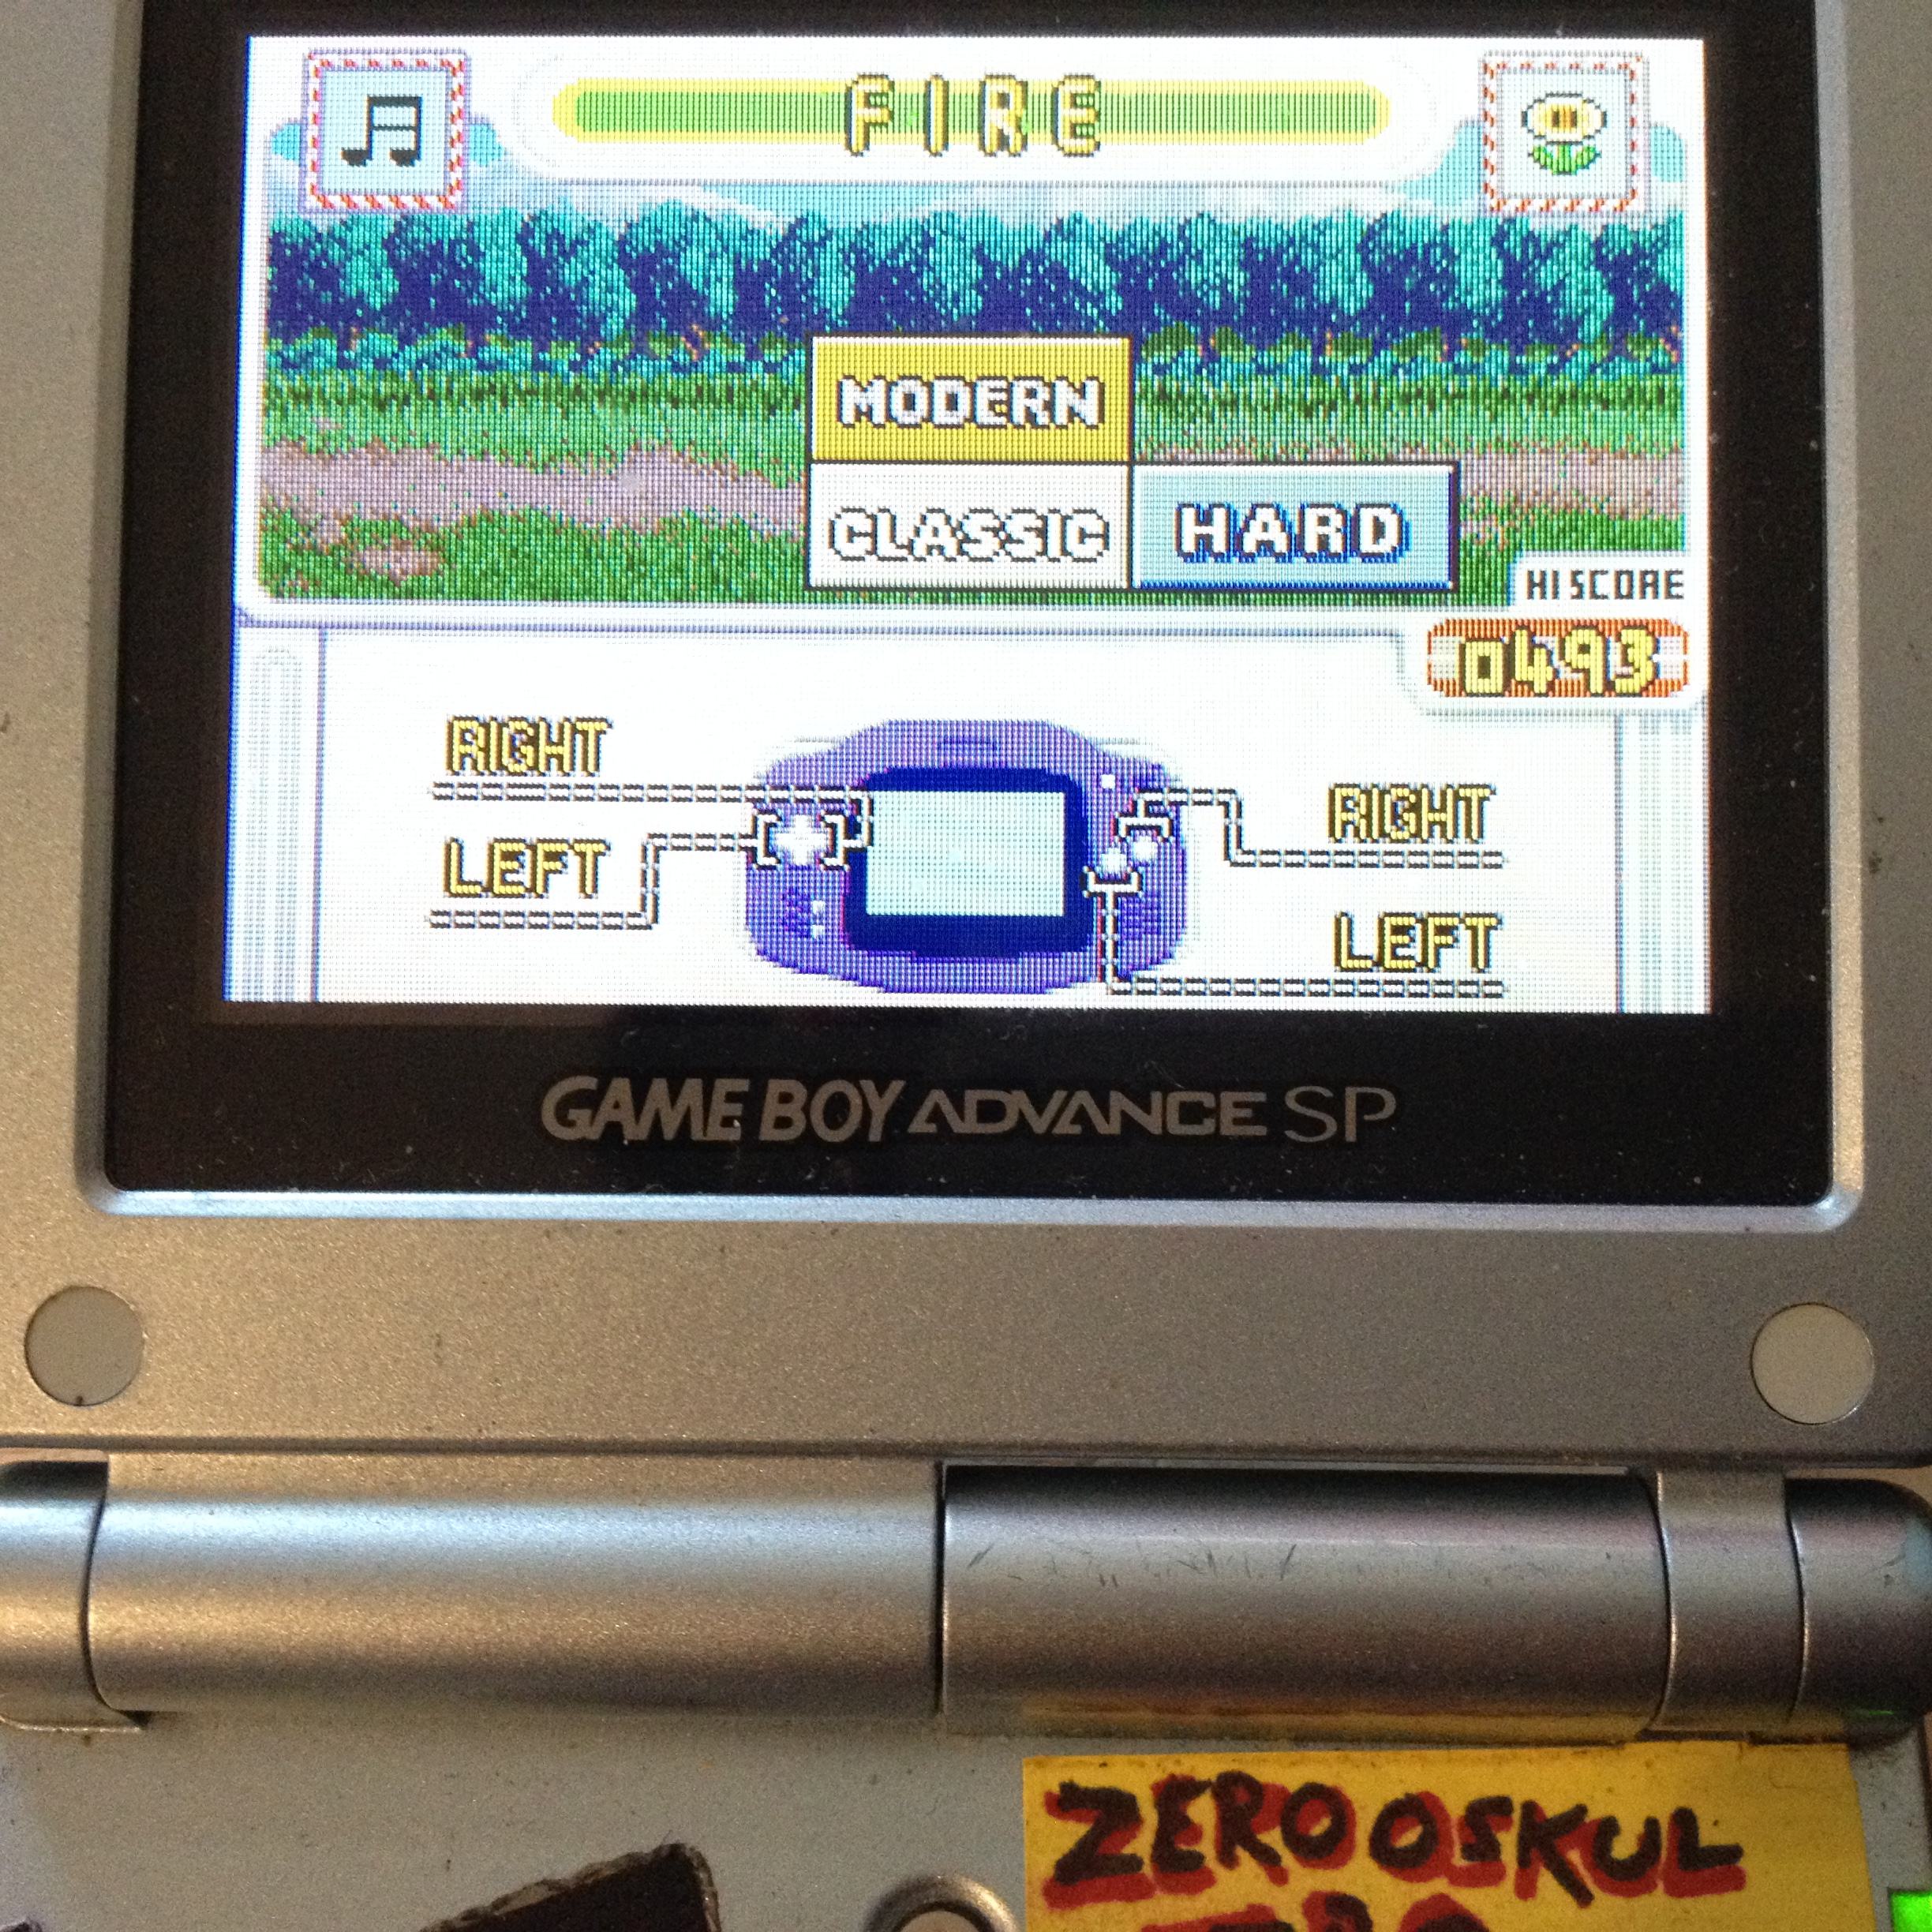 zerooskul: Game & Watch Gallery 4: Fire [Classic: Hard] (GBA) 493 points on 2019-08-10 11:58:00